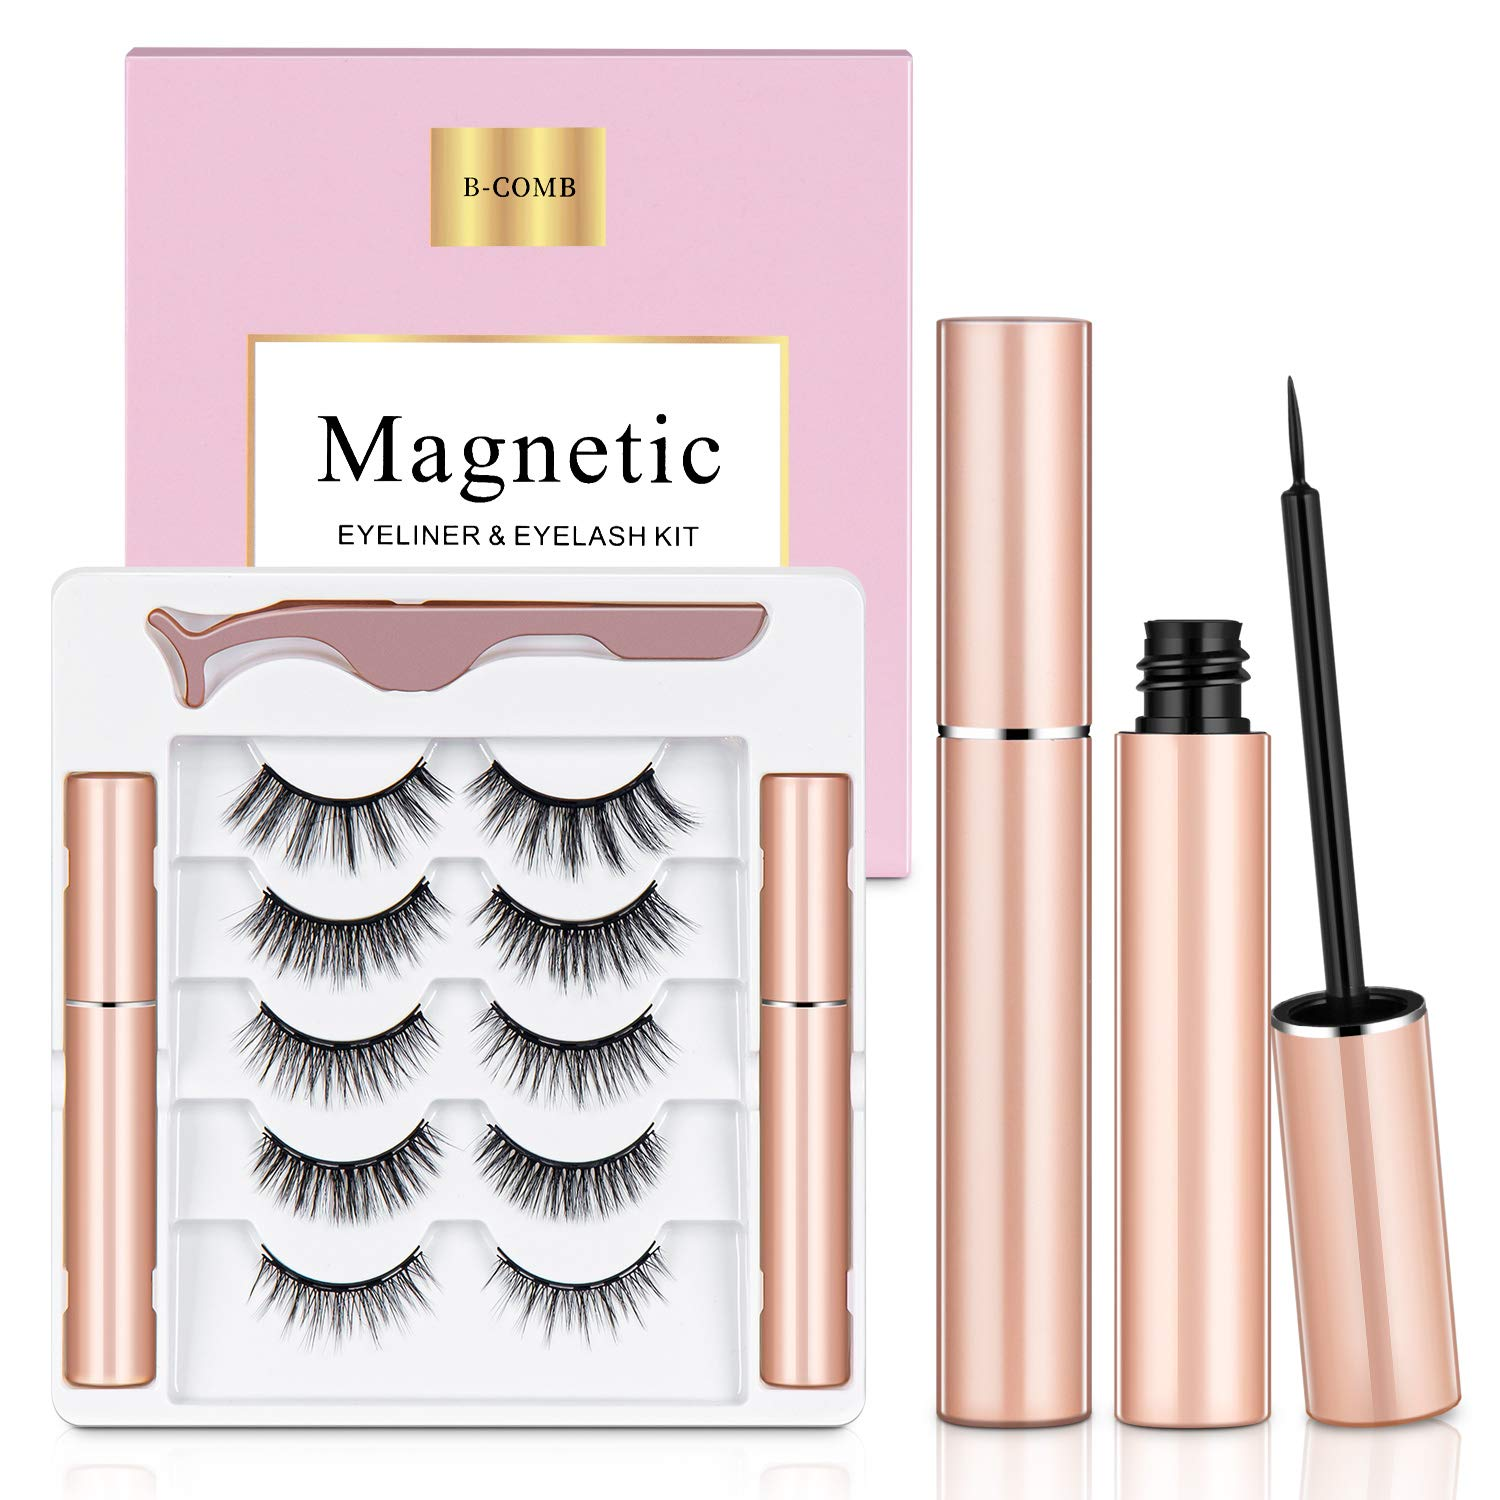 Magnetic Eyelashes with Eyeliner, B-COMB Magnetic Eyelashes and Eyeliner Kit, 5 Pairs Upgraded Reusable Magnetic Lashes Natural Look, No Glue Needed